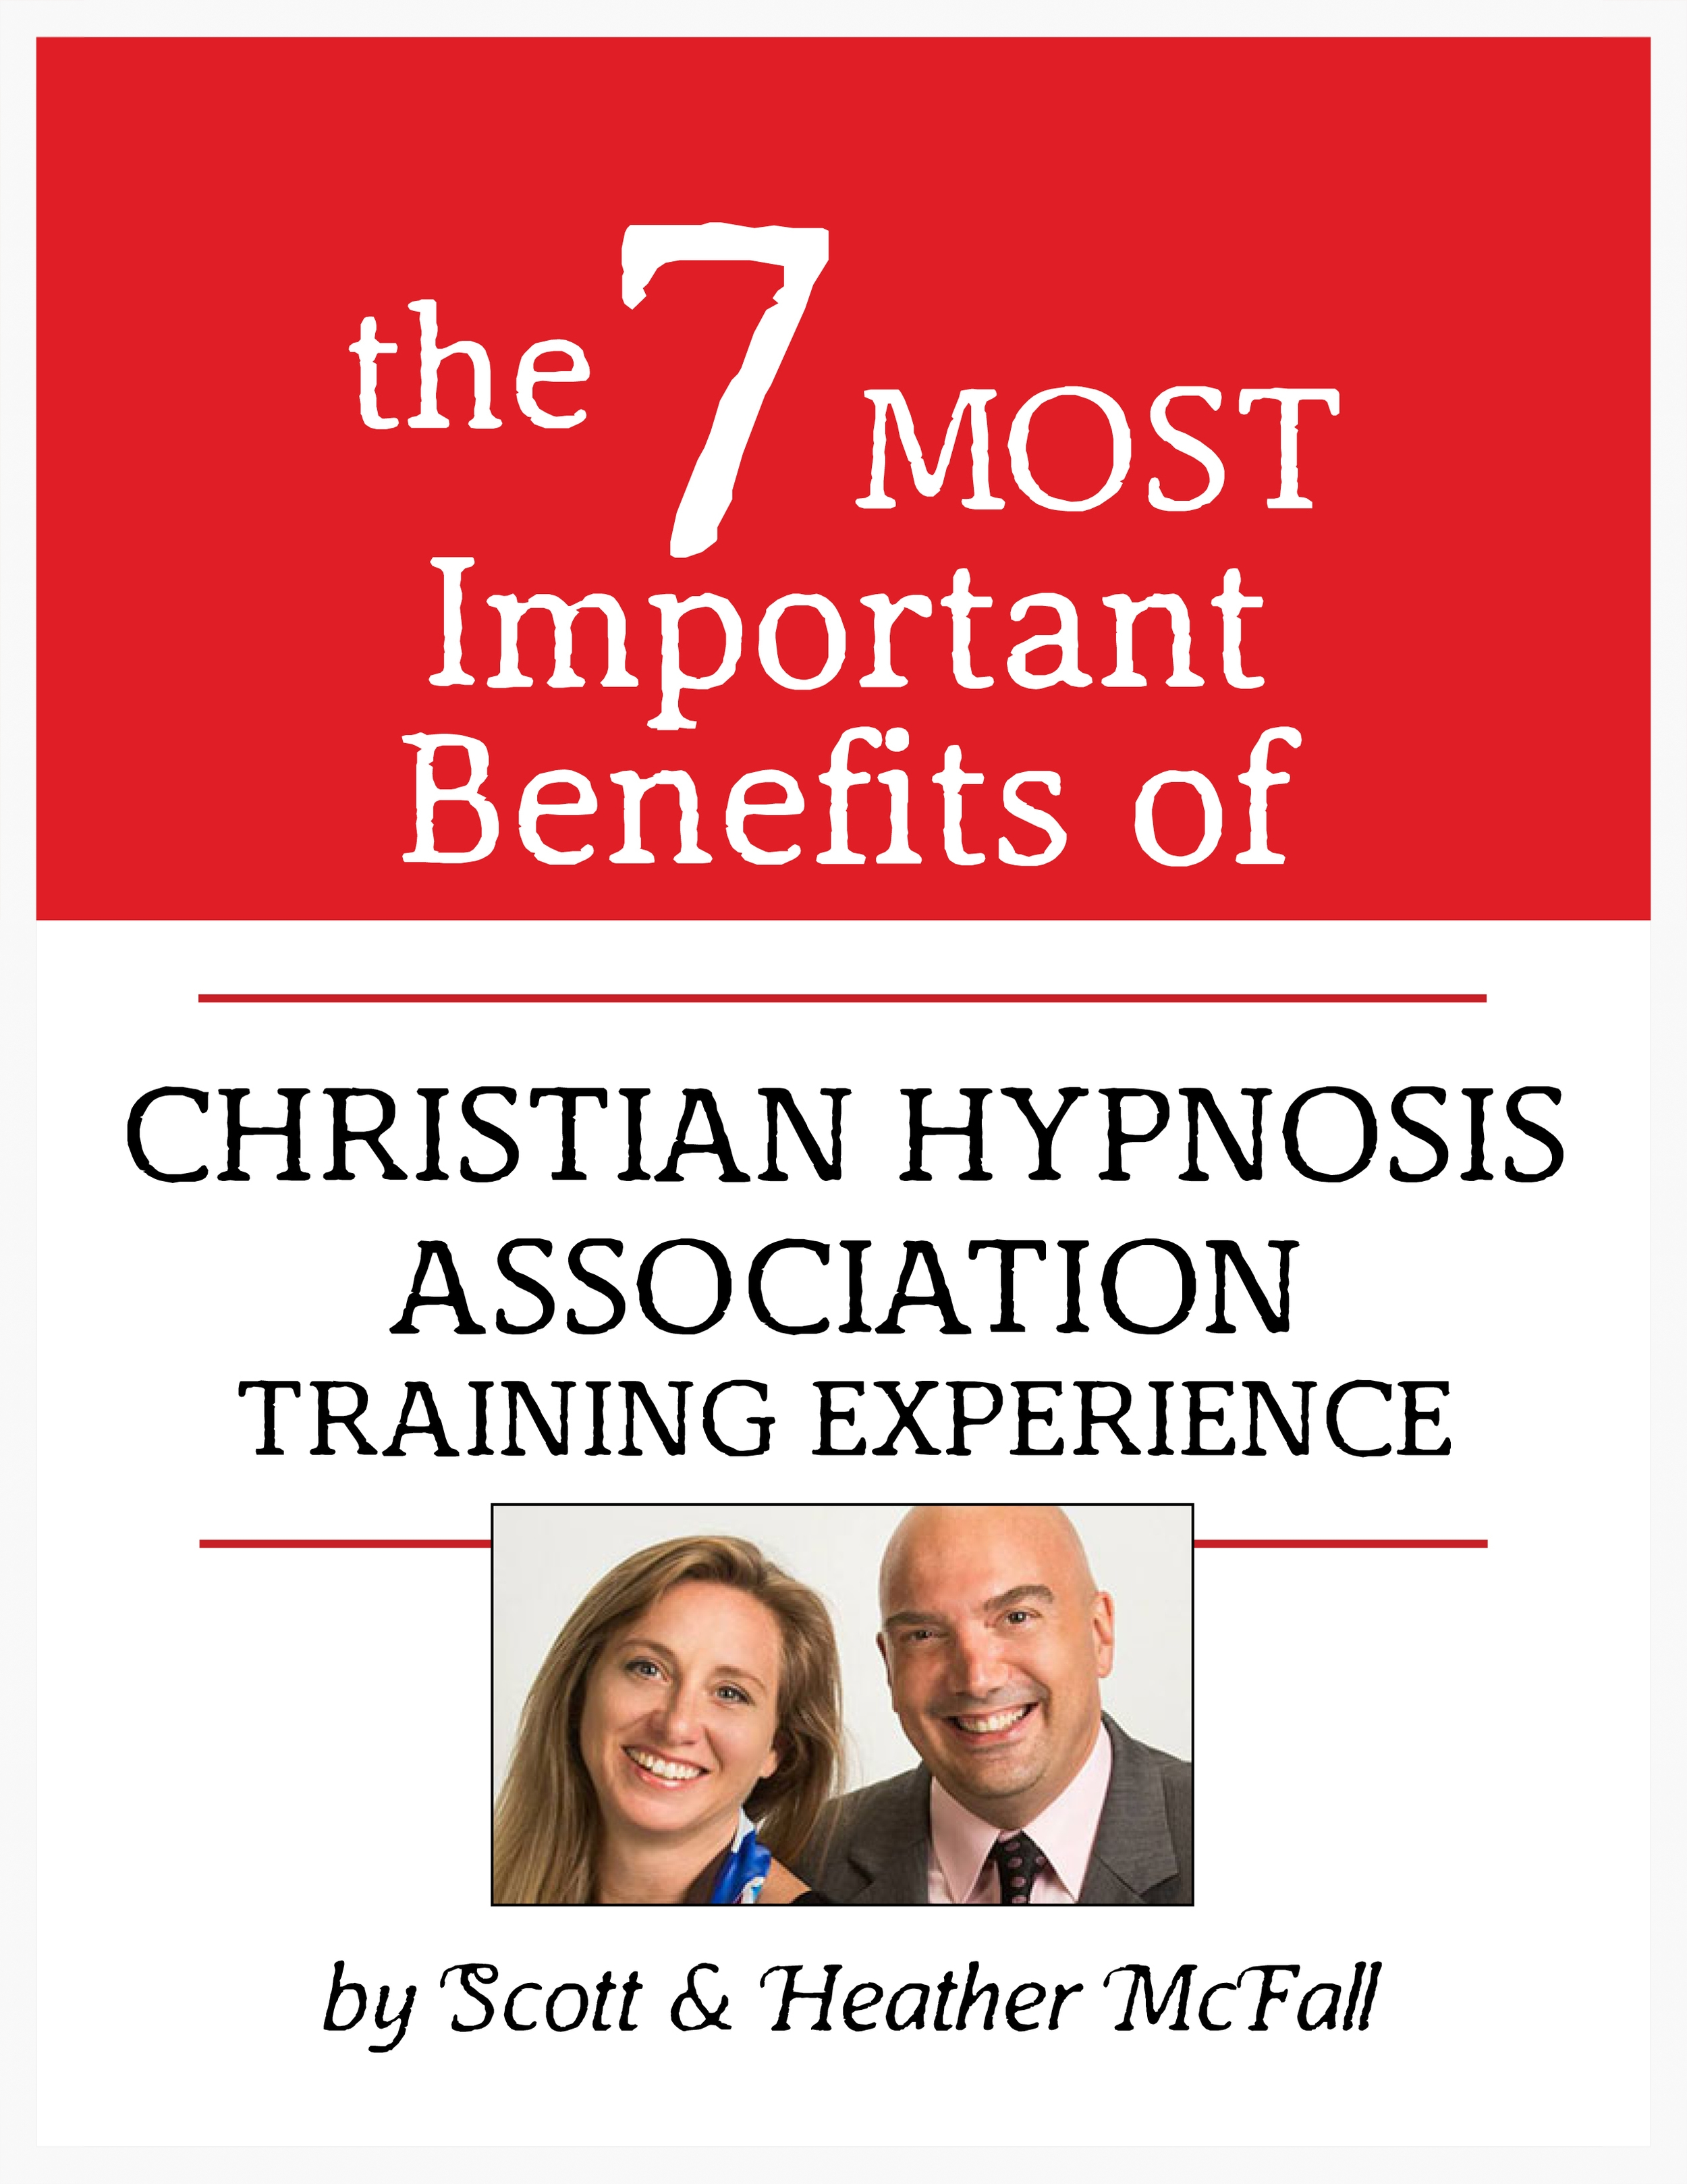 Christian Hypnosis Association Training Experience, by Scott and Heather McFall, Fort Myers, Florida.